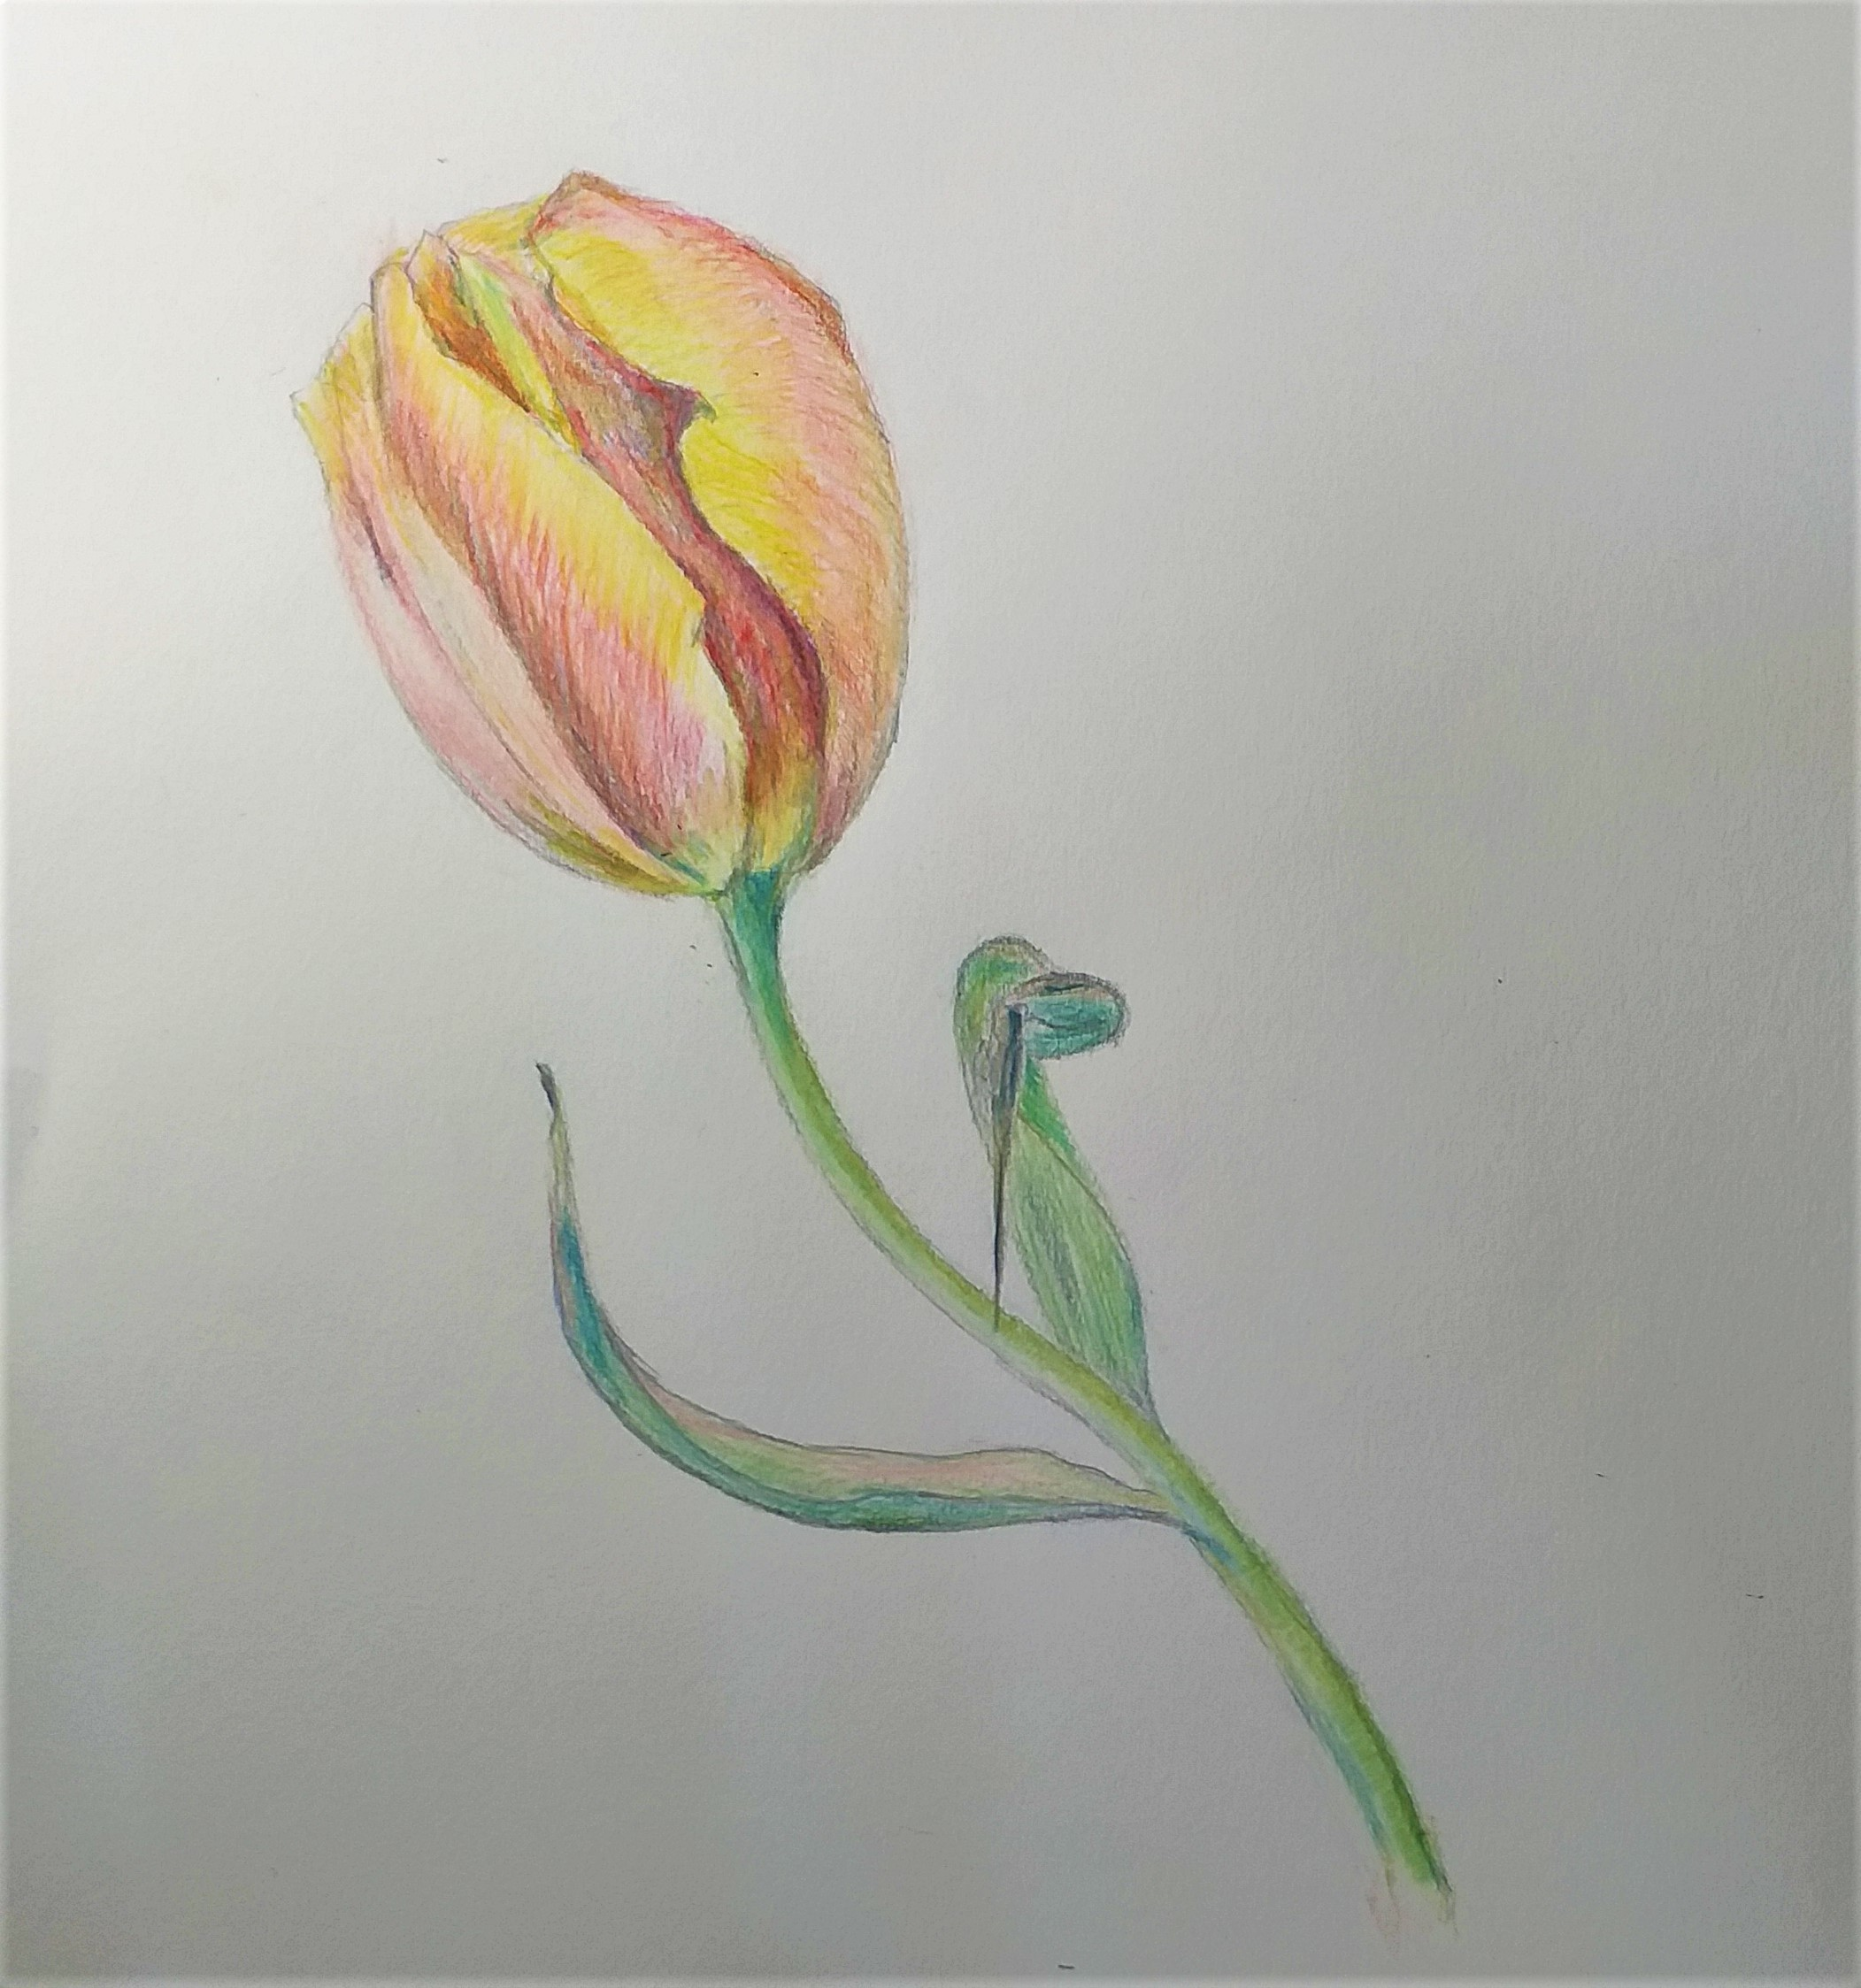 learn how to draw with coloured pencils at art classes in Worcestershire